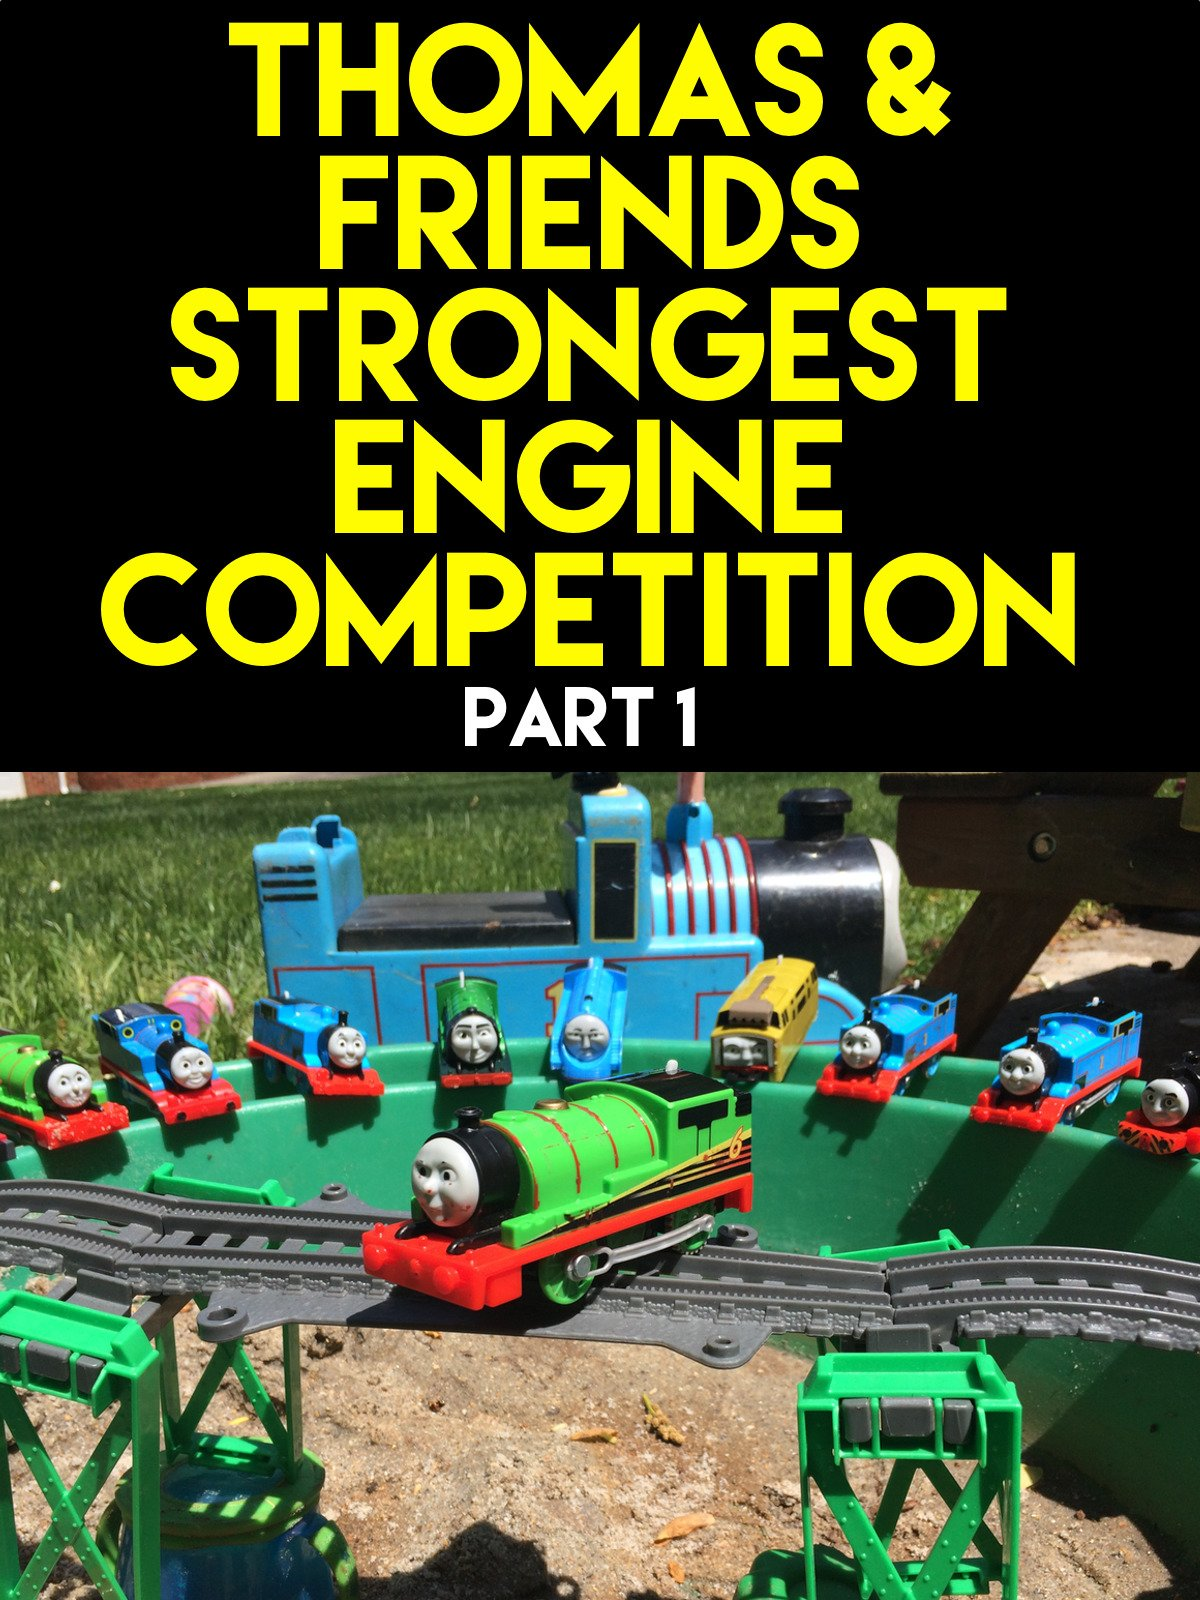 Clip: Thomas and Friends Strongest Engine Competition part 1